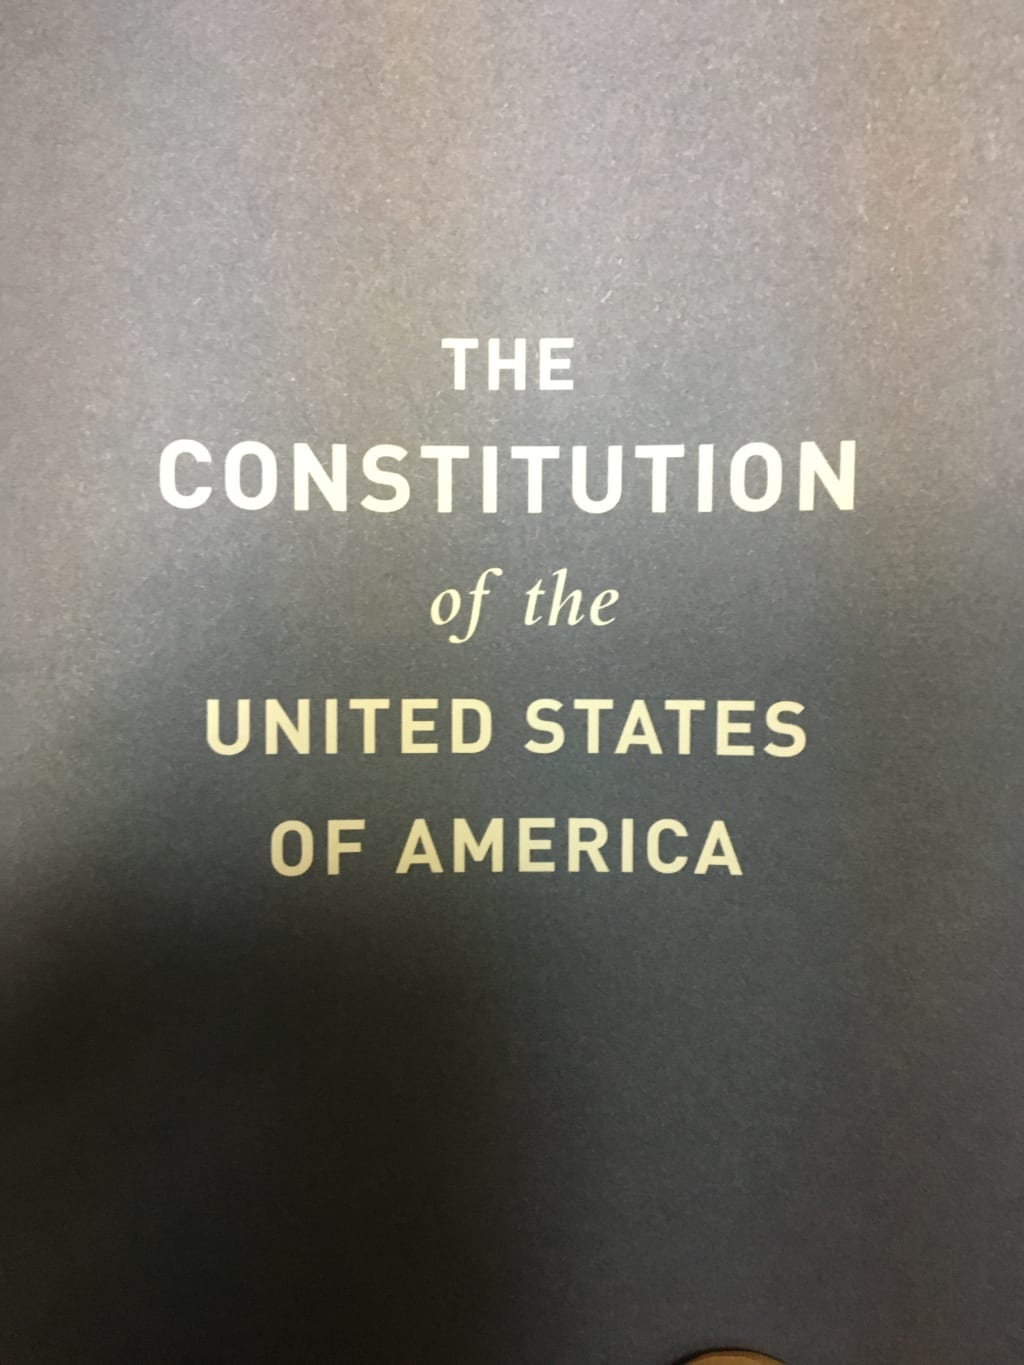 One Problem With the Constitution